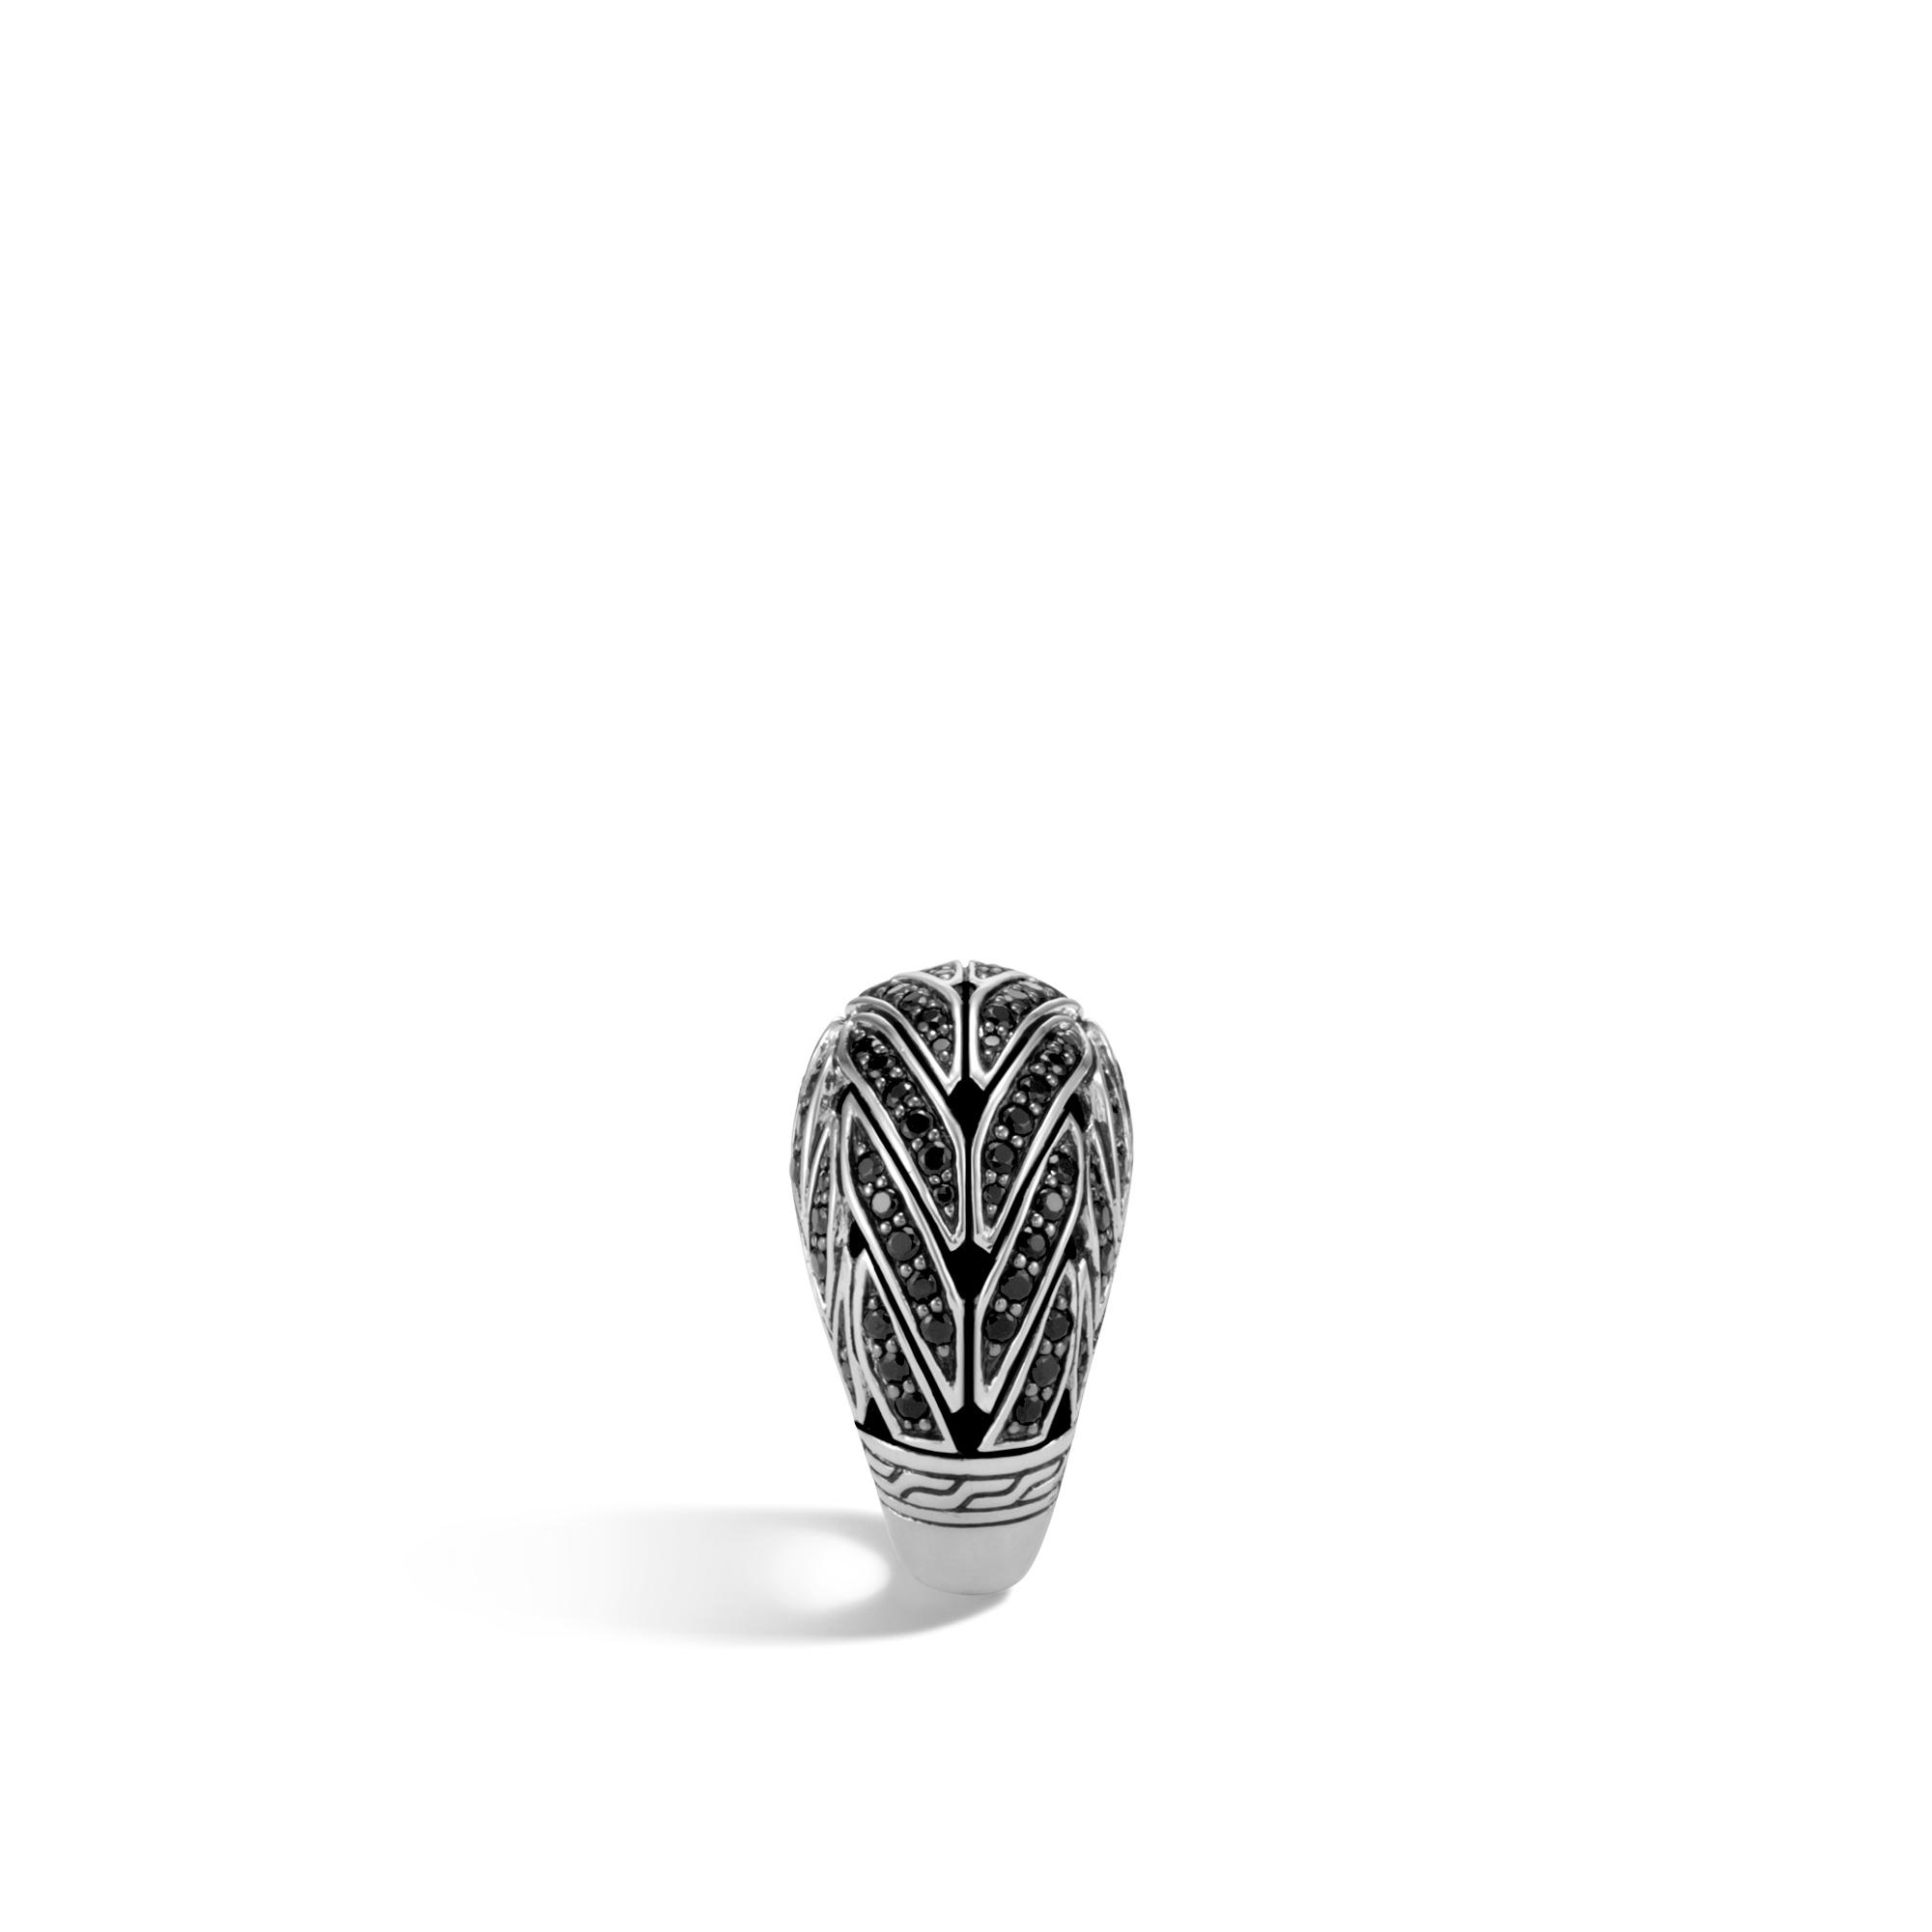 John Hardy Classic Chain Dome Ring, Black Sapphire, Black Spinel